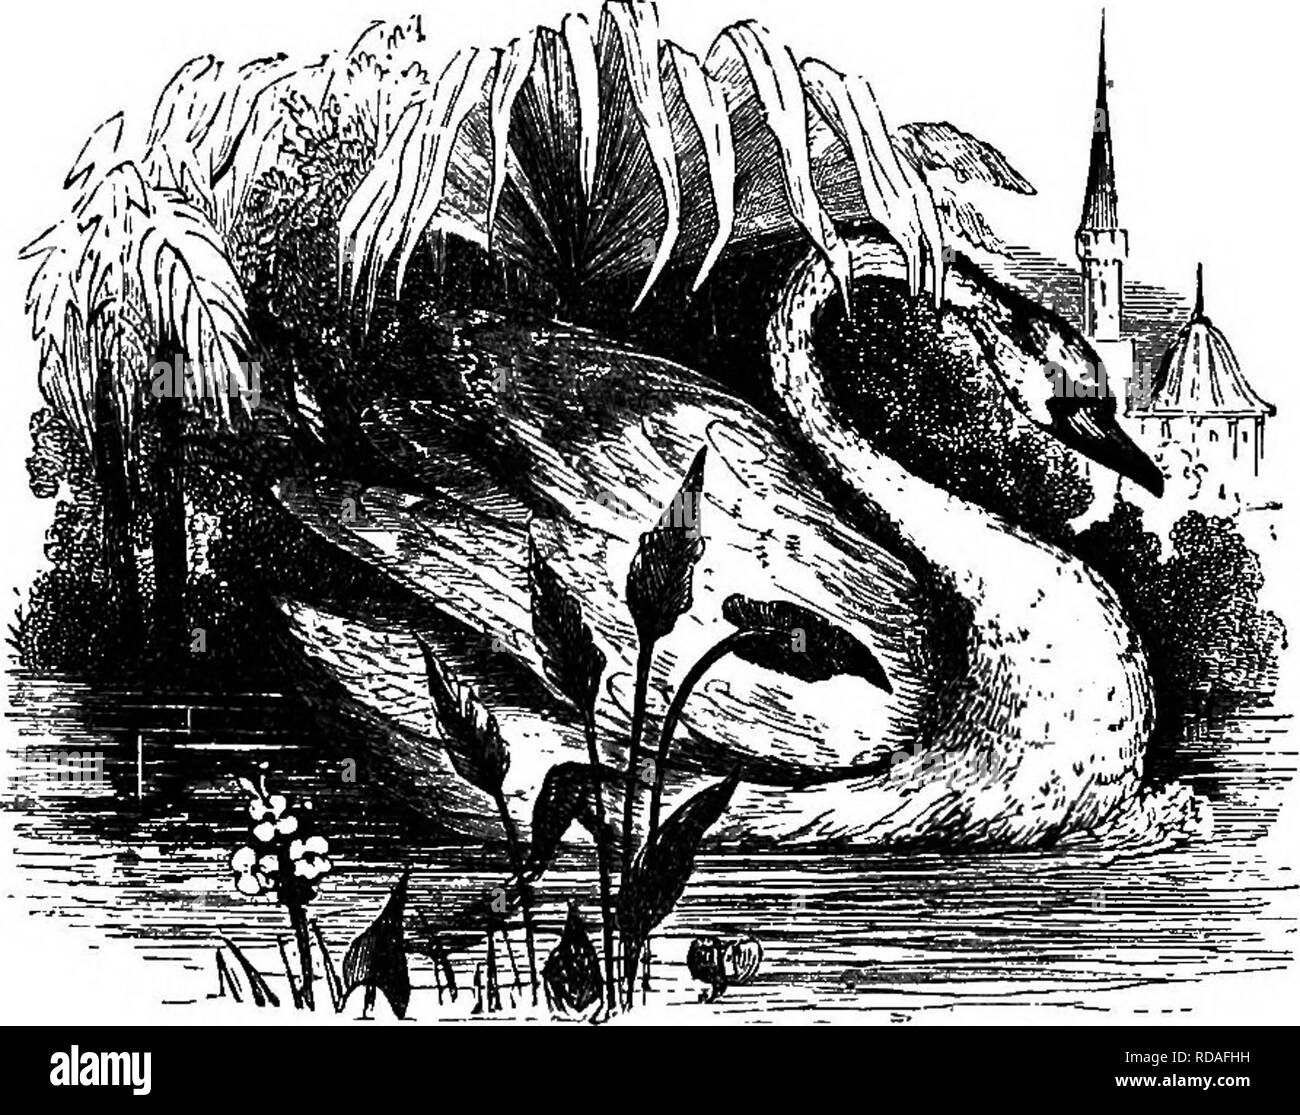 """. Illustrated natural history : comprising descriptions of animals, birds, fishes, reptiles, insects, etc., with sketches of their peculiar habits and characteristics . Zoology. â iOi VERTEBEATES. and a little hooked at the lower end of it. The two sides below its eyns are black and shining like ebony. Swans use their wings like sails, which catch the wind, so that they are driven along in the water."""" This is a peculiarity connected with this water-bird _ and they who have seen its snow-white wings expanded, with the light feathers fluttering in the breeze as it moves rapidly along the gl - Stock Image"""